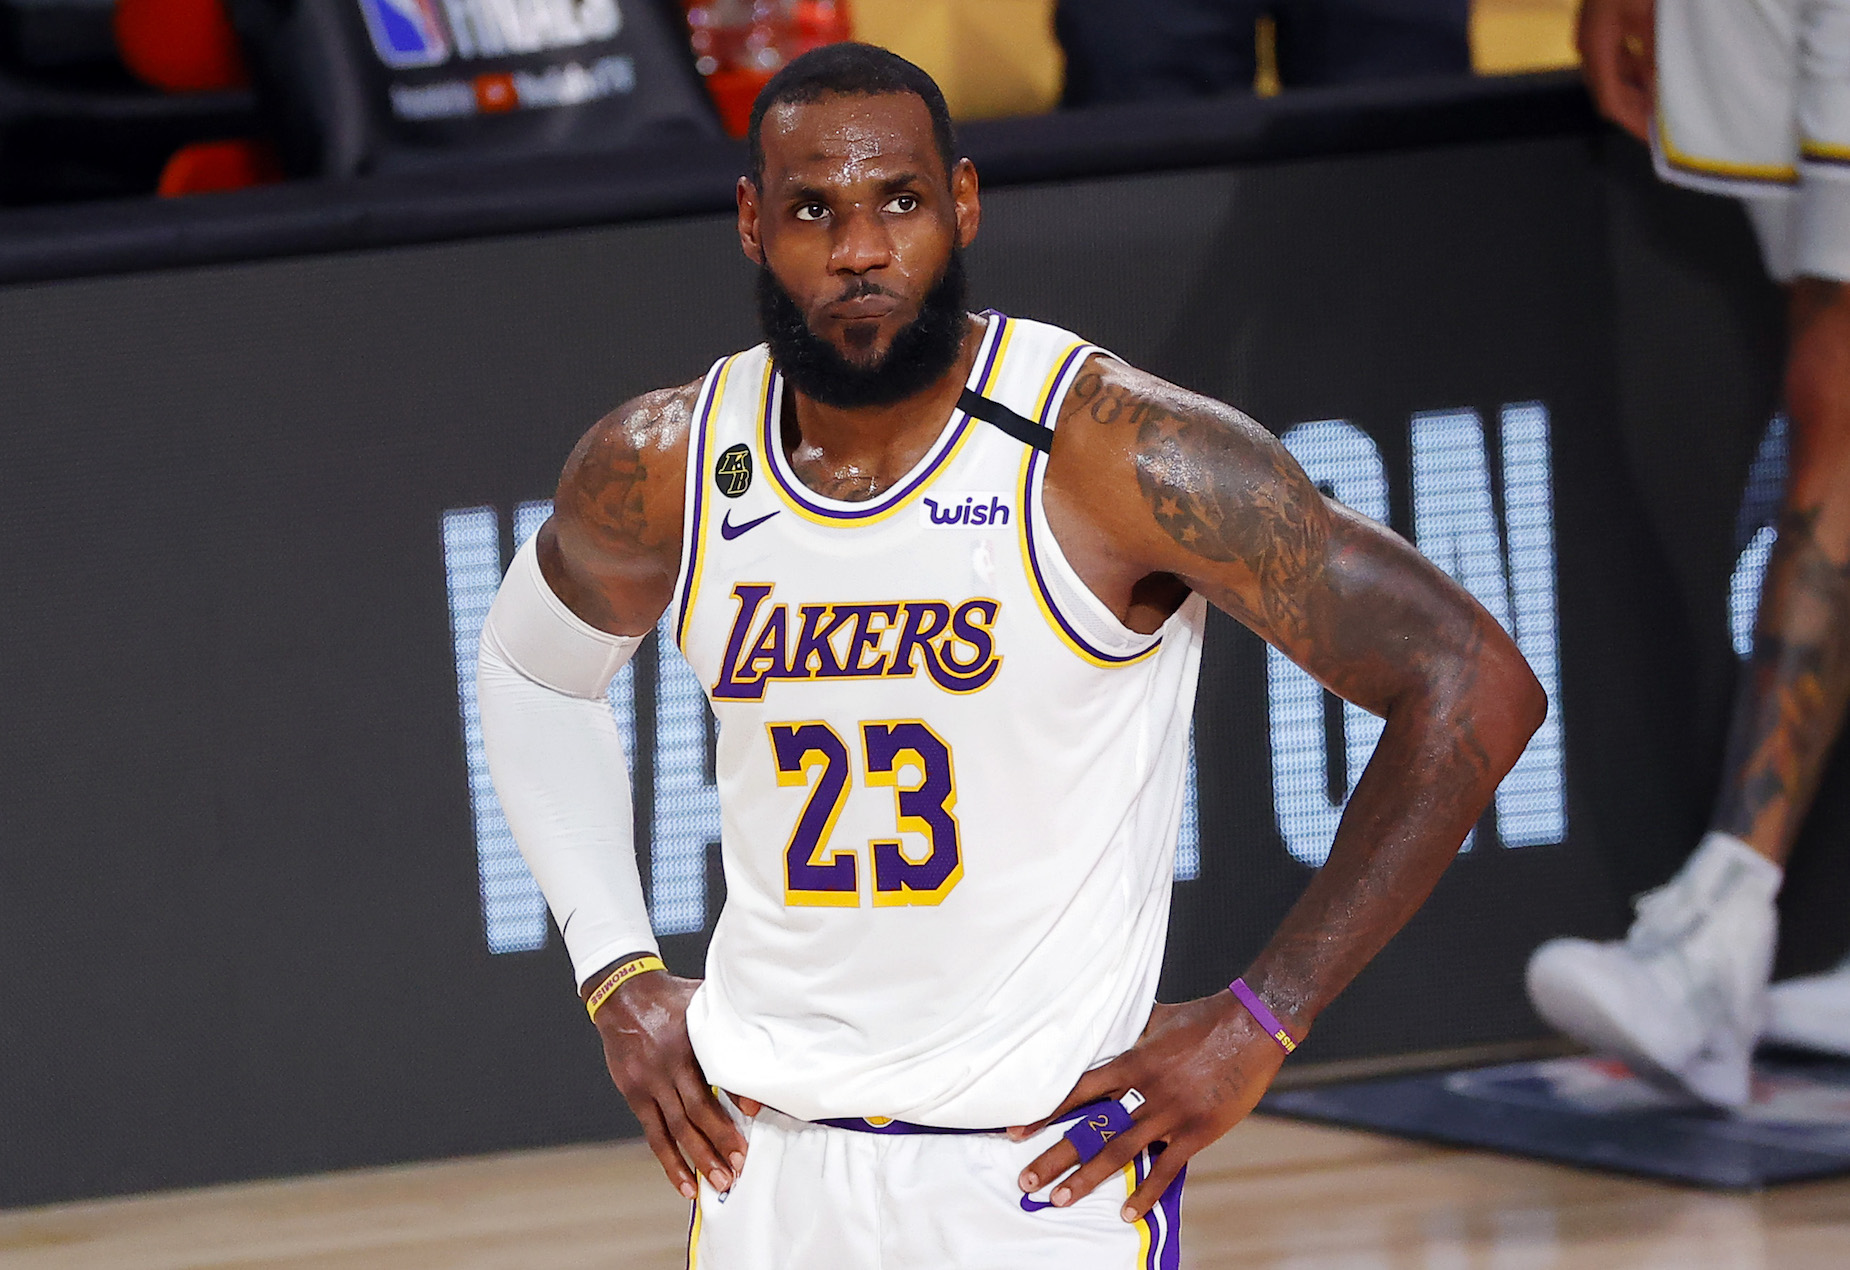 The LA Lakers dropped Game 3 of the NBA Finals but LeBron James isn't too concerned.